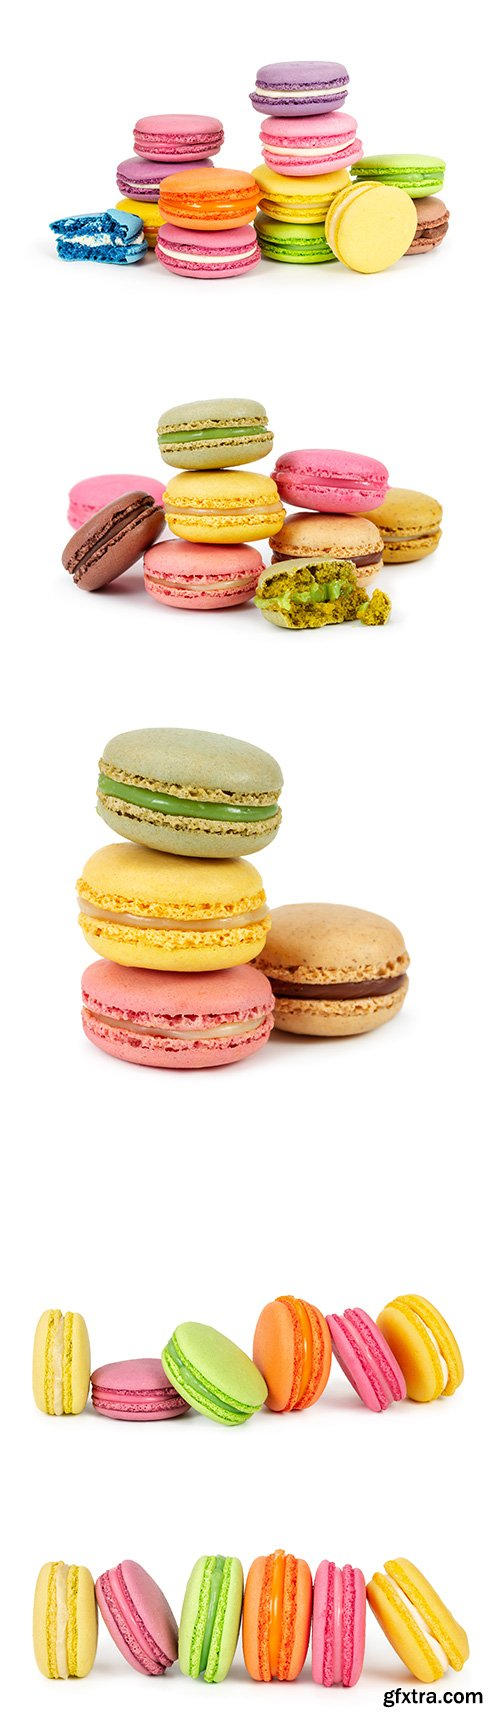 Colorful Macaroons Isolated - 6xJPGs